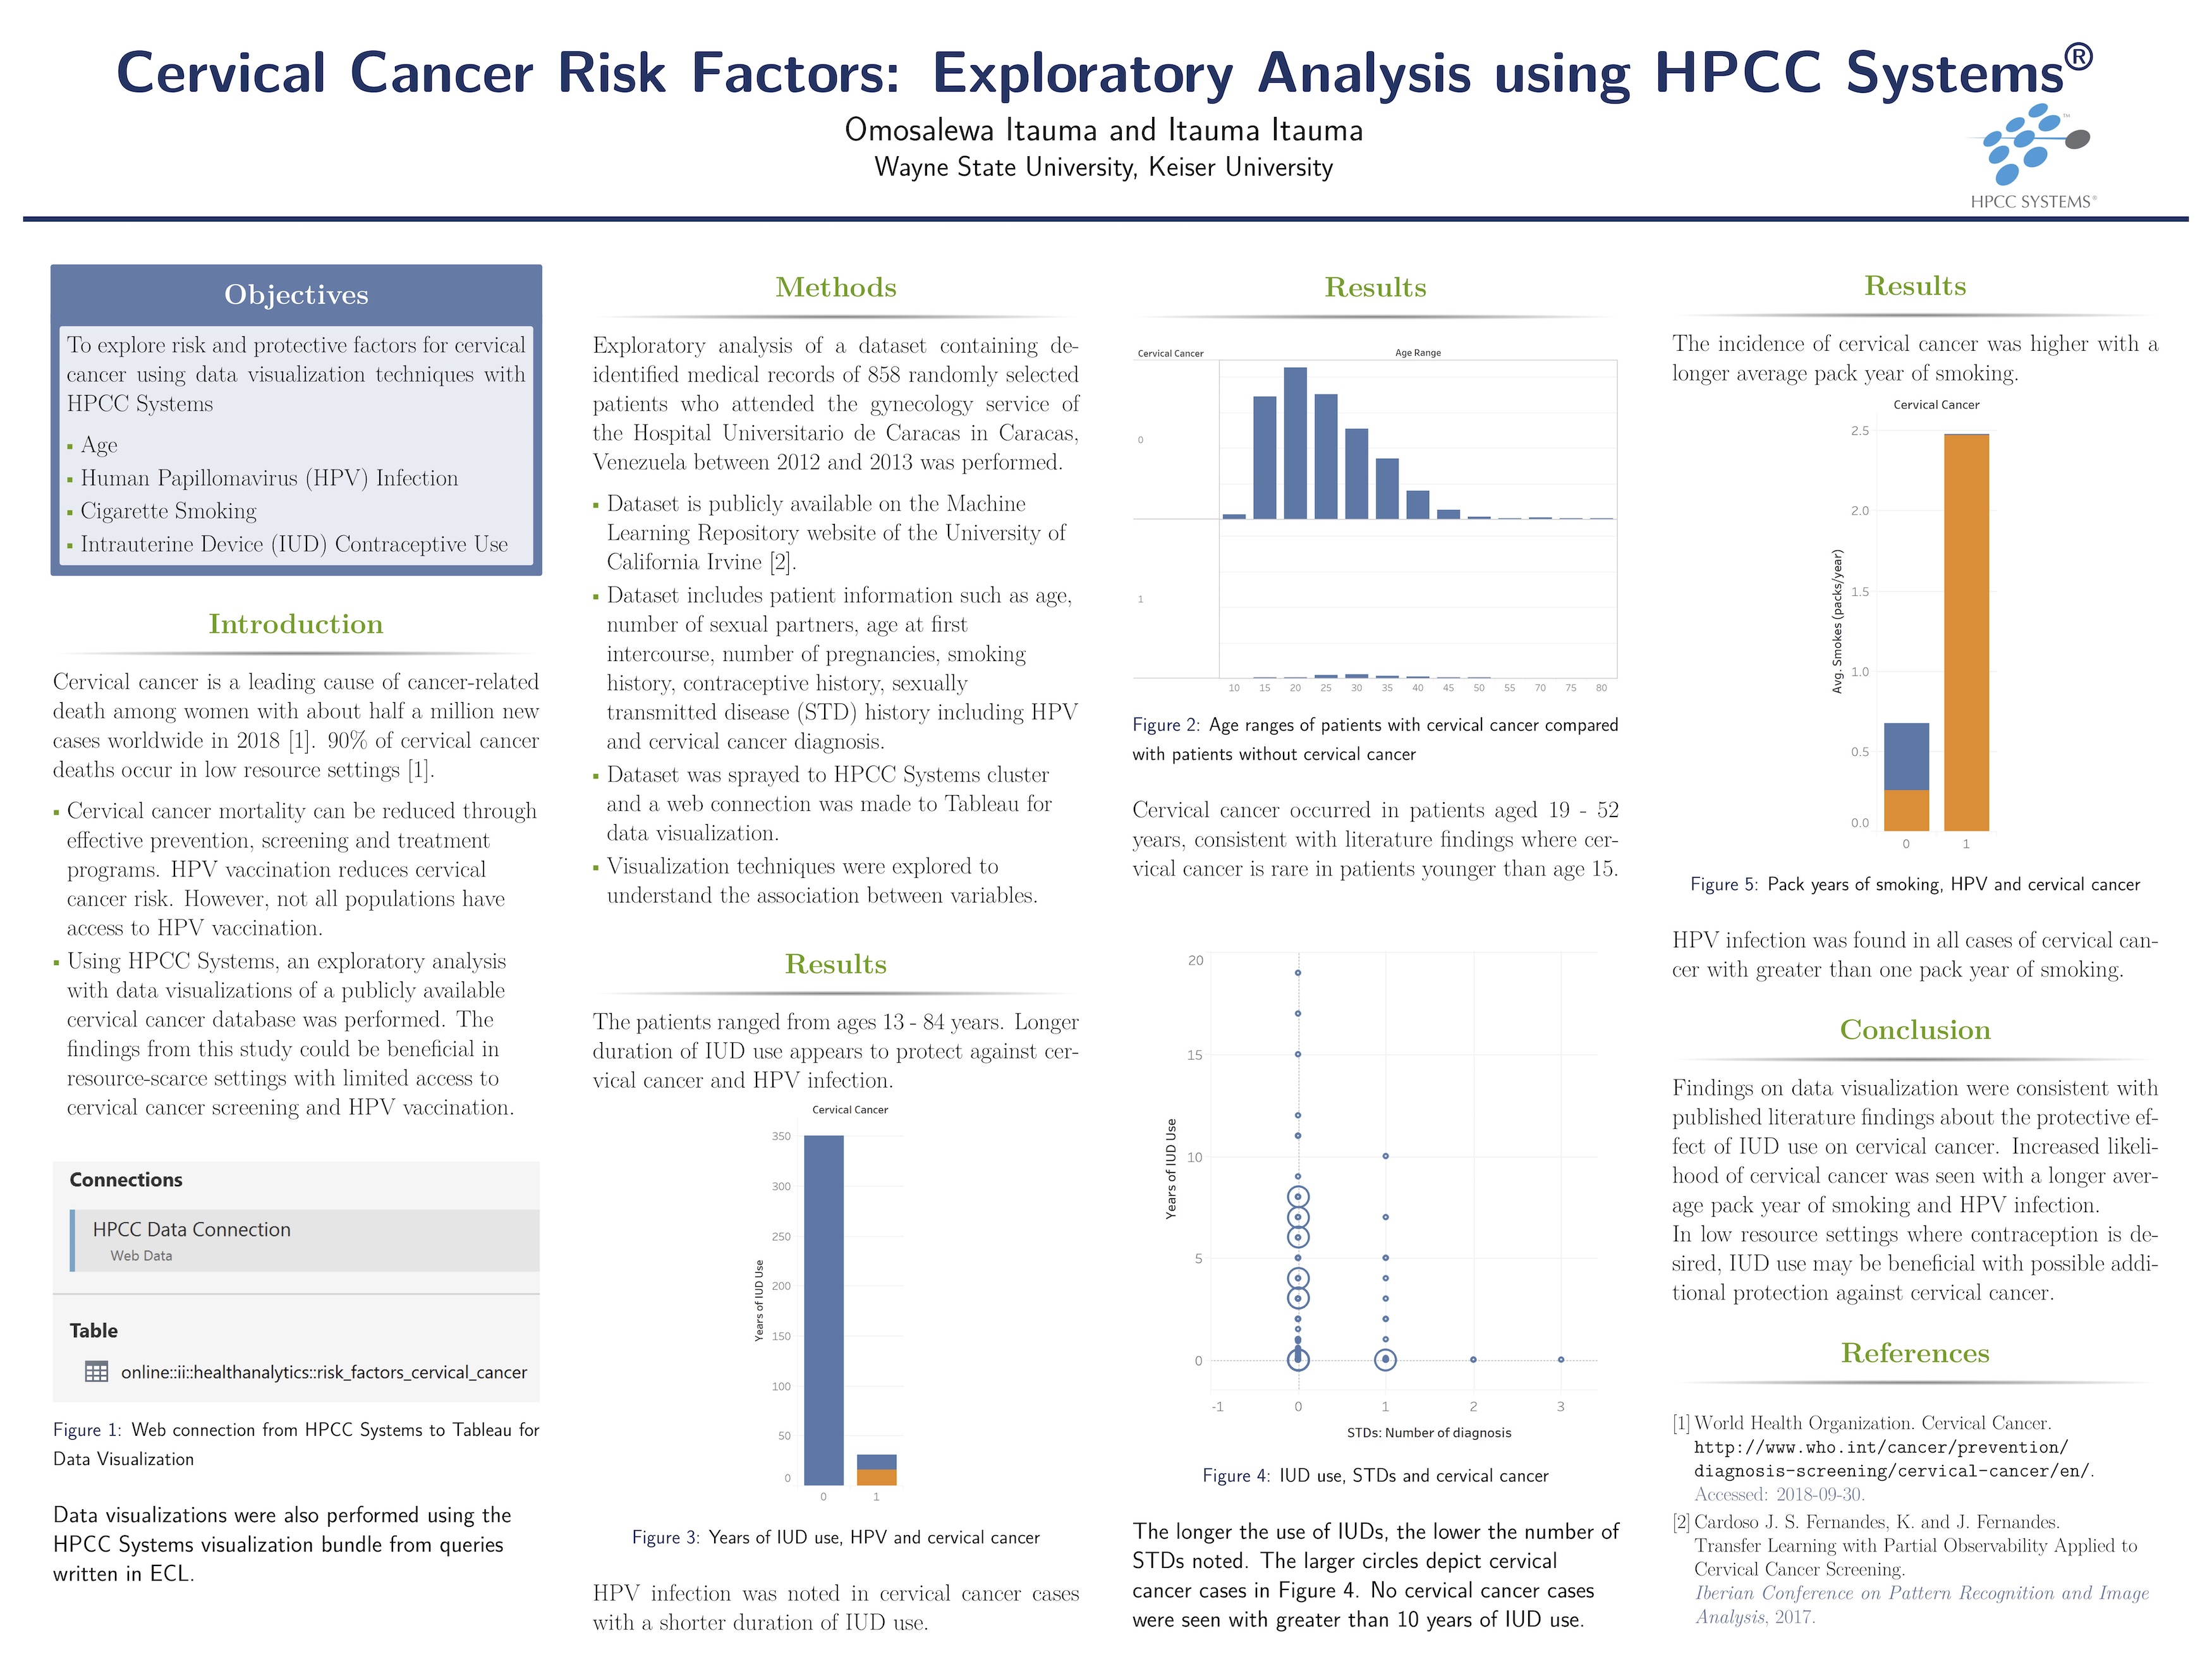 Itauma Itauma - Cervical cancer risk factors: Exploratory analysis